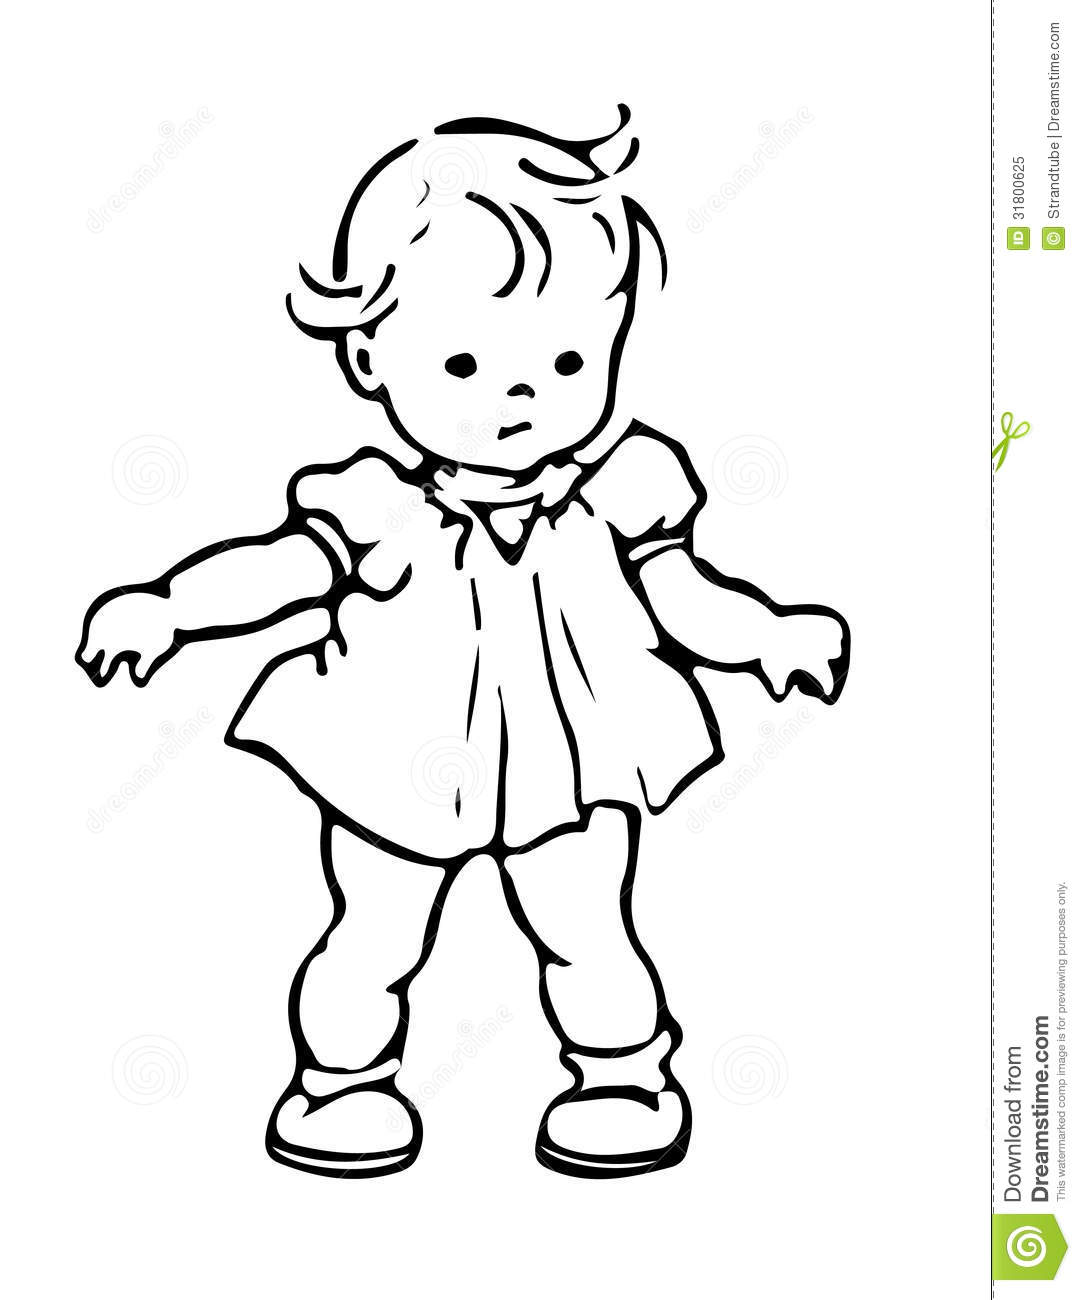 Line Art Baby : Baby stock illustration image of sitting person joyful